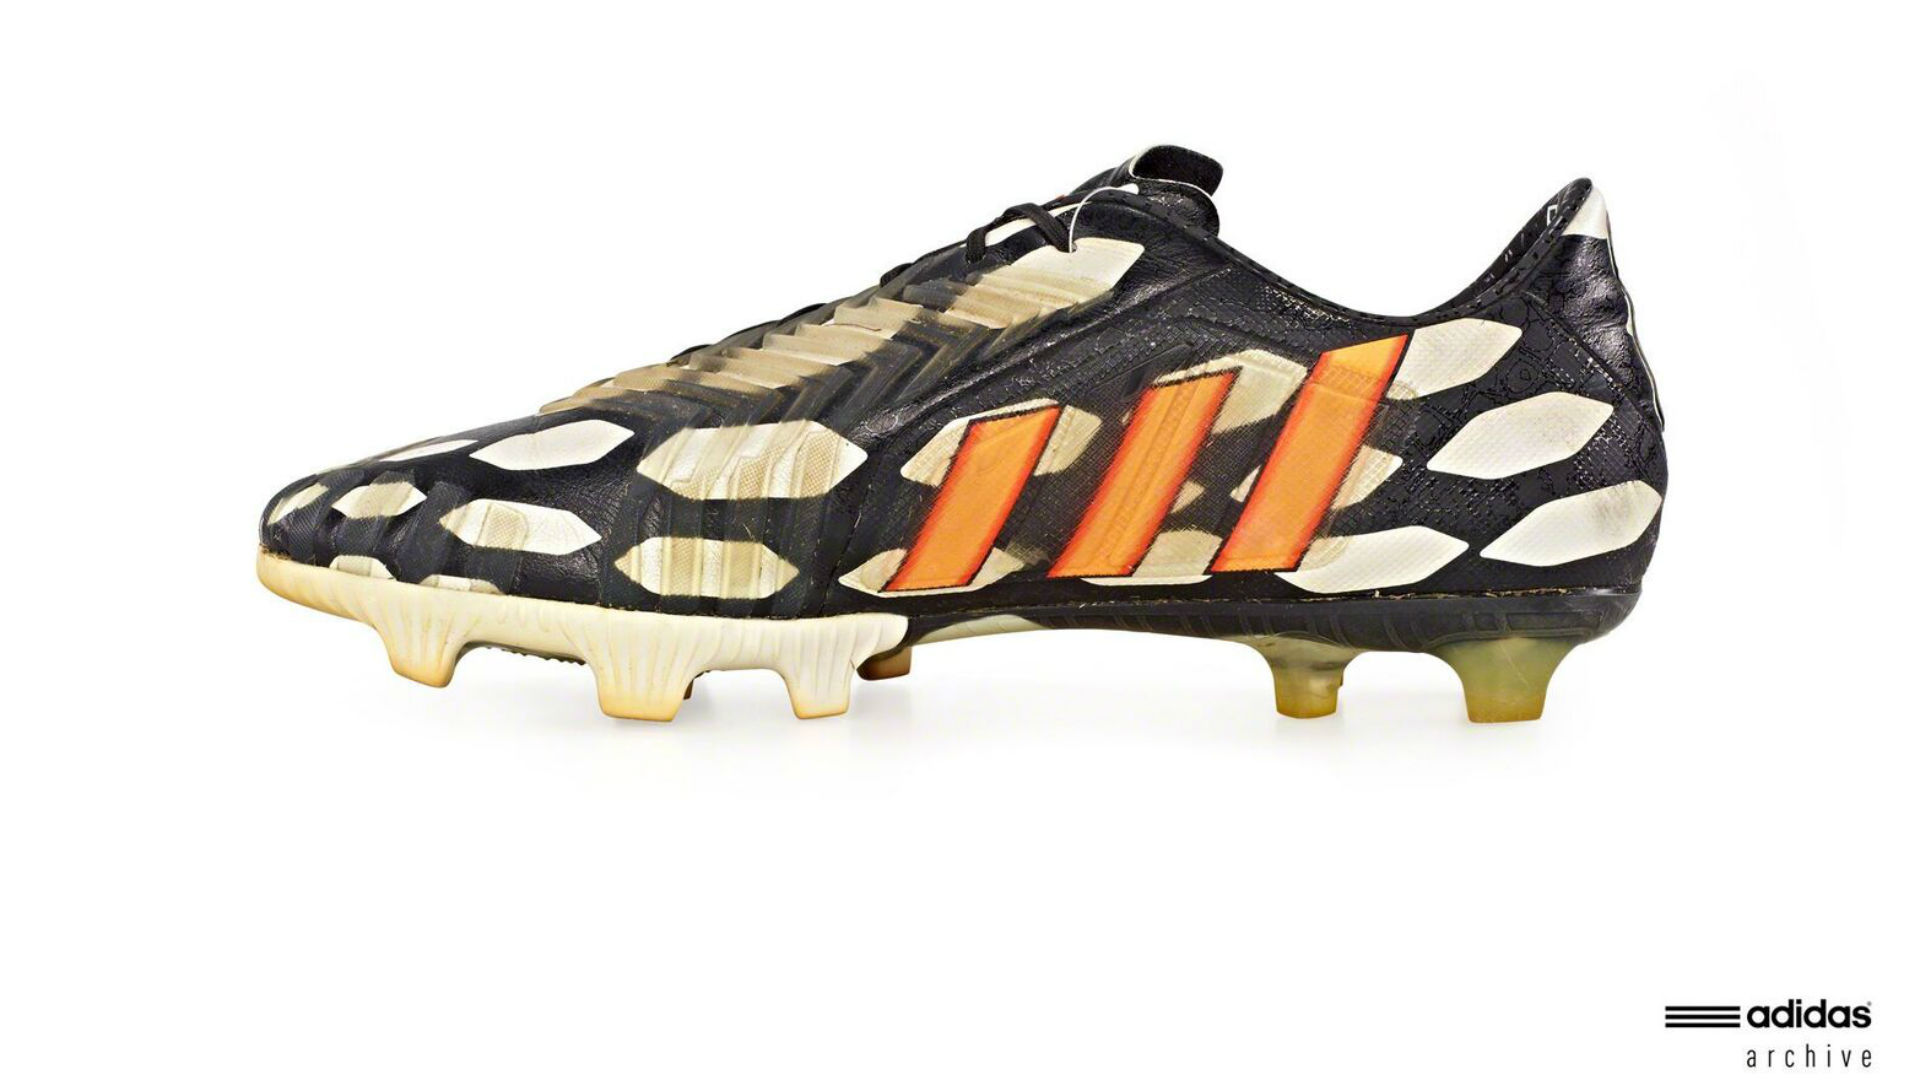 reputable site ac431 140f2 ... denmark adidas predator accelerator mania every edition of world famous  boots sporting news 28699 6fc14